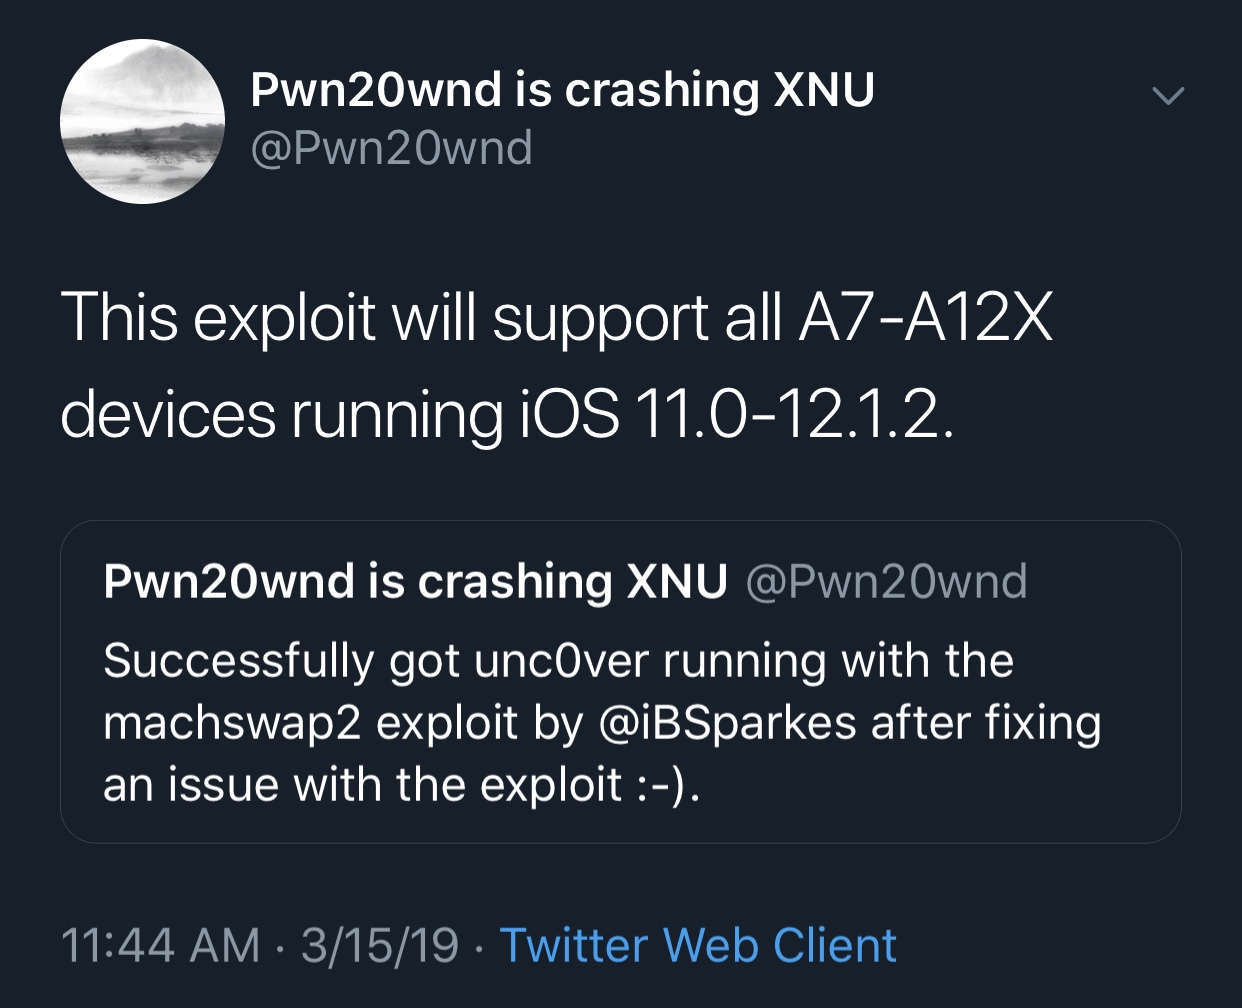 Pwn20wnd says machswap2 exploit is coming to unc0ver with support for A7-A12(X) devices